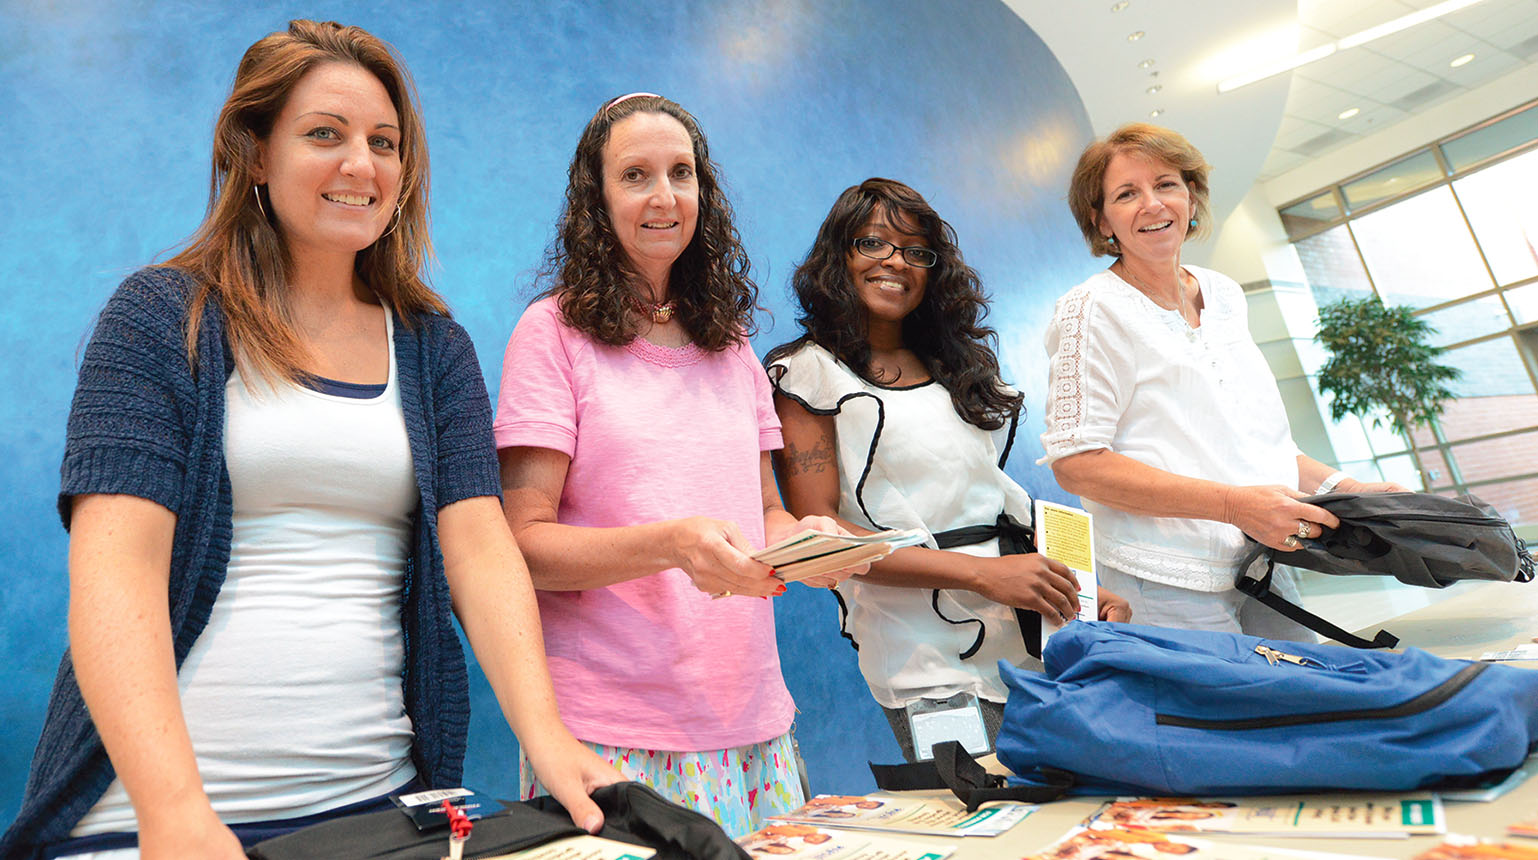 NYSUT staff members, from left, Lindsay O'Sullivan, Lori Agnew, Swinka Richards and Helen Vickery help stuff 1,200 backpacks with school supplies and donated books from the NYSUT-AFT-First Book project.